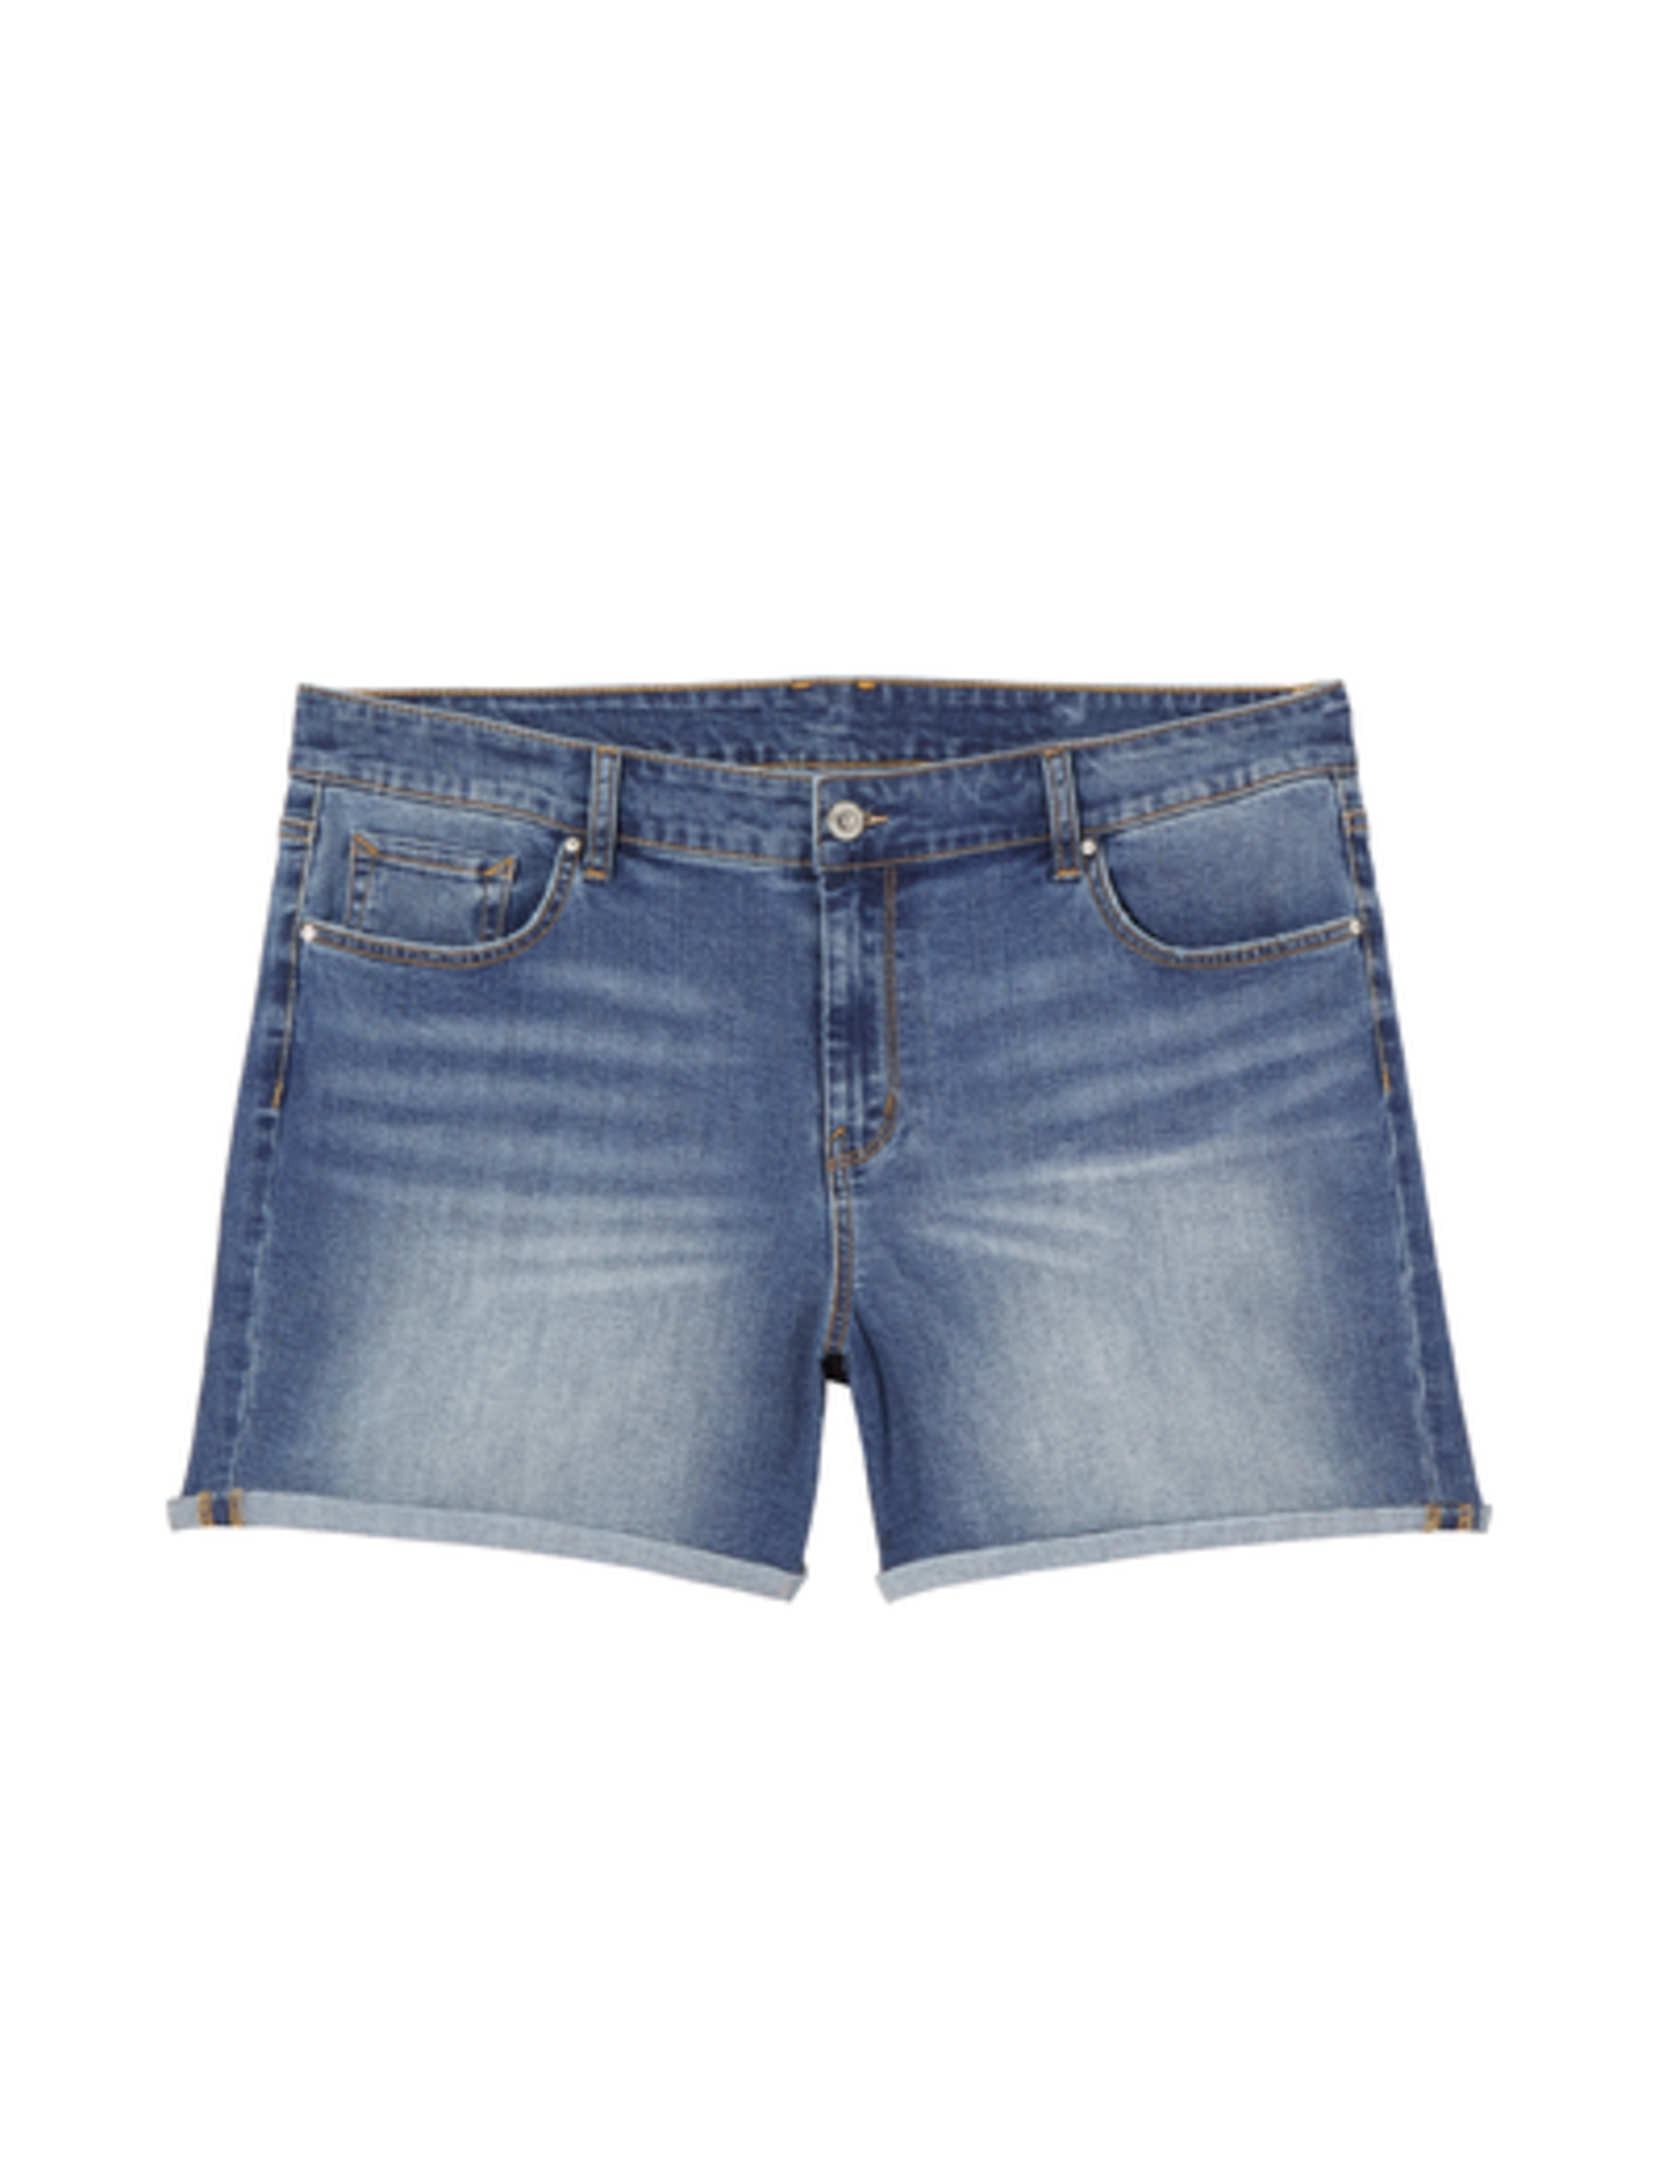 plus size shorts rolled up denim shorts